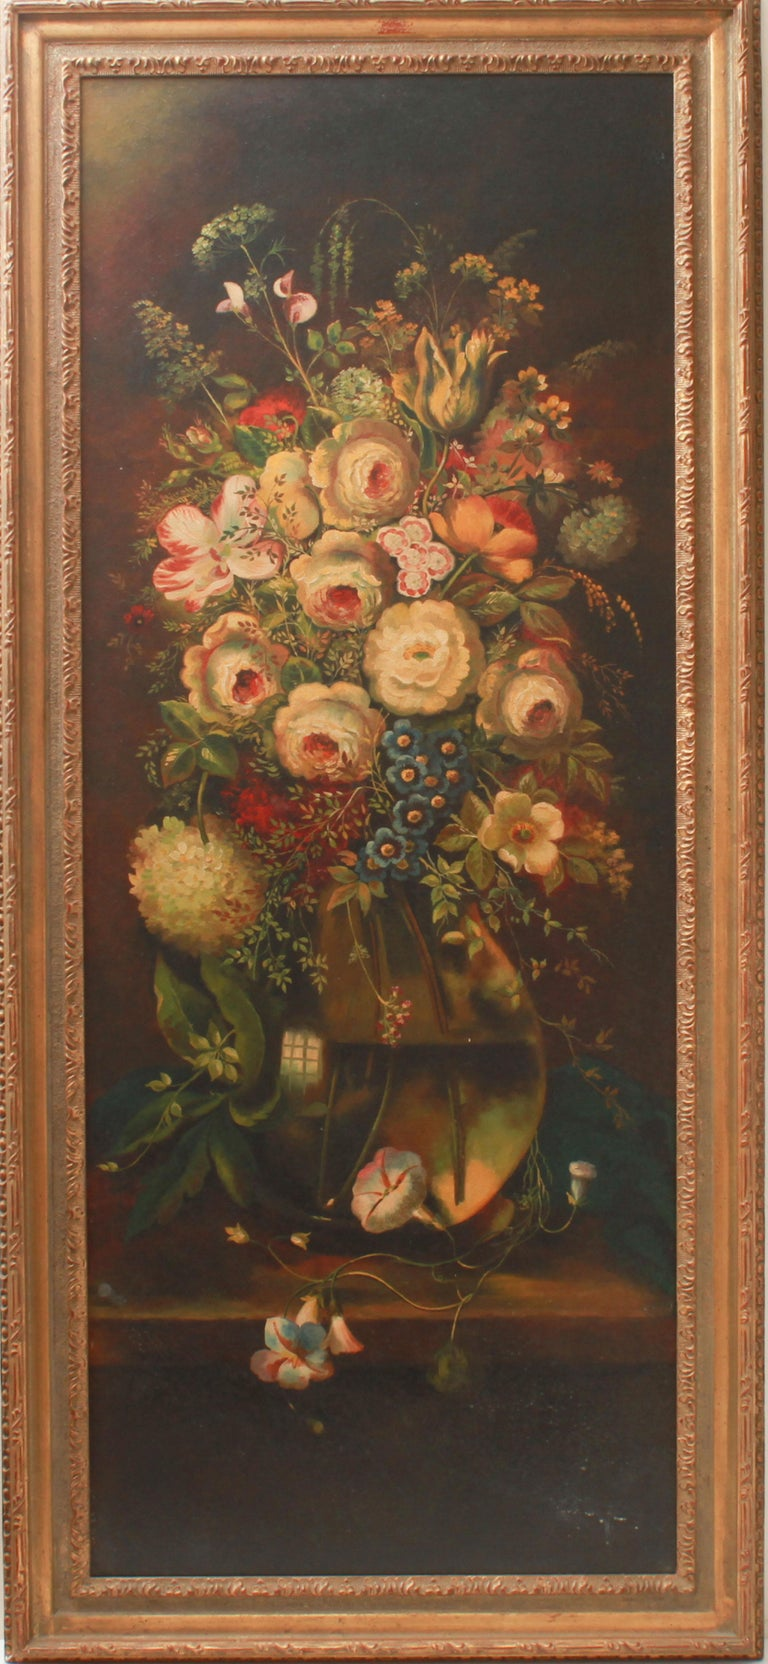 Continental manner pair of matching still life paintings depicting floral bouquets in glass vase and urn, oil on board. Made in the 20th century.  Image: 52.75